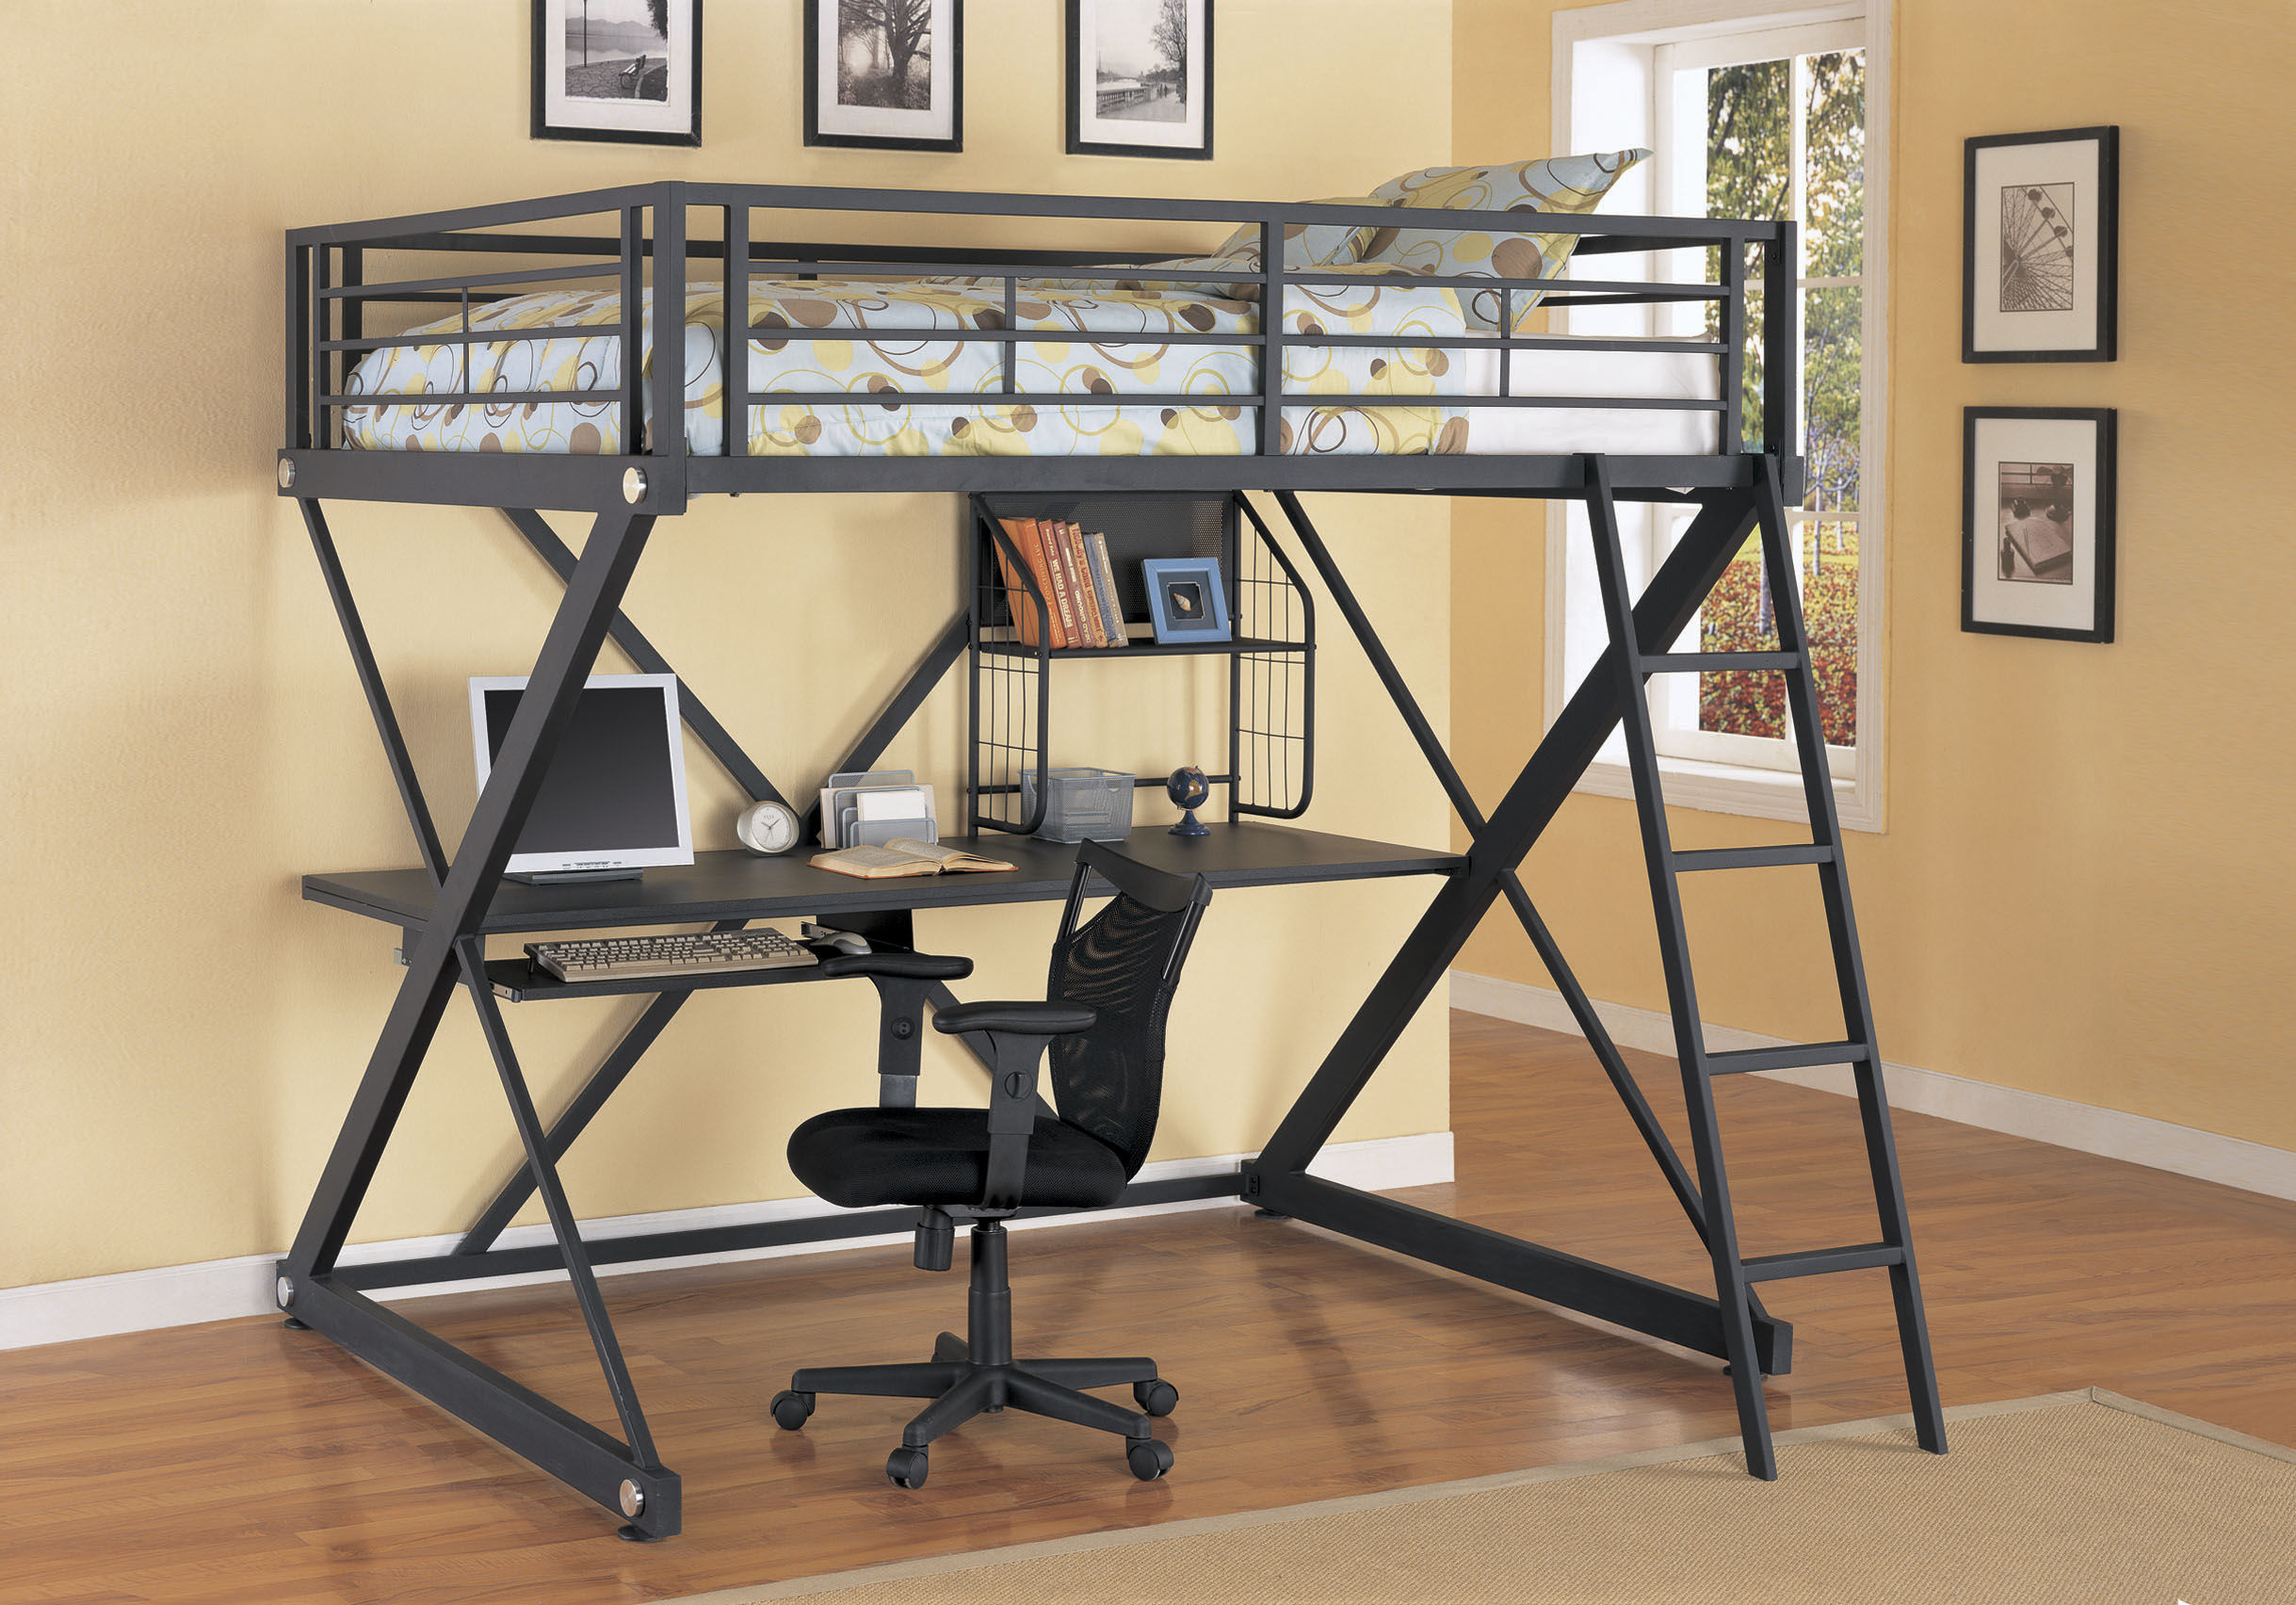 Bunk bed with desk for adults - Steel Black Bunk Bed With Desk Below The Bed Black Chair And Cream Color On Rug